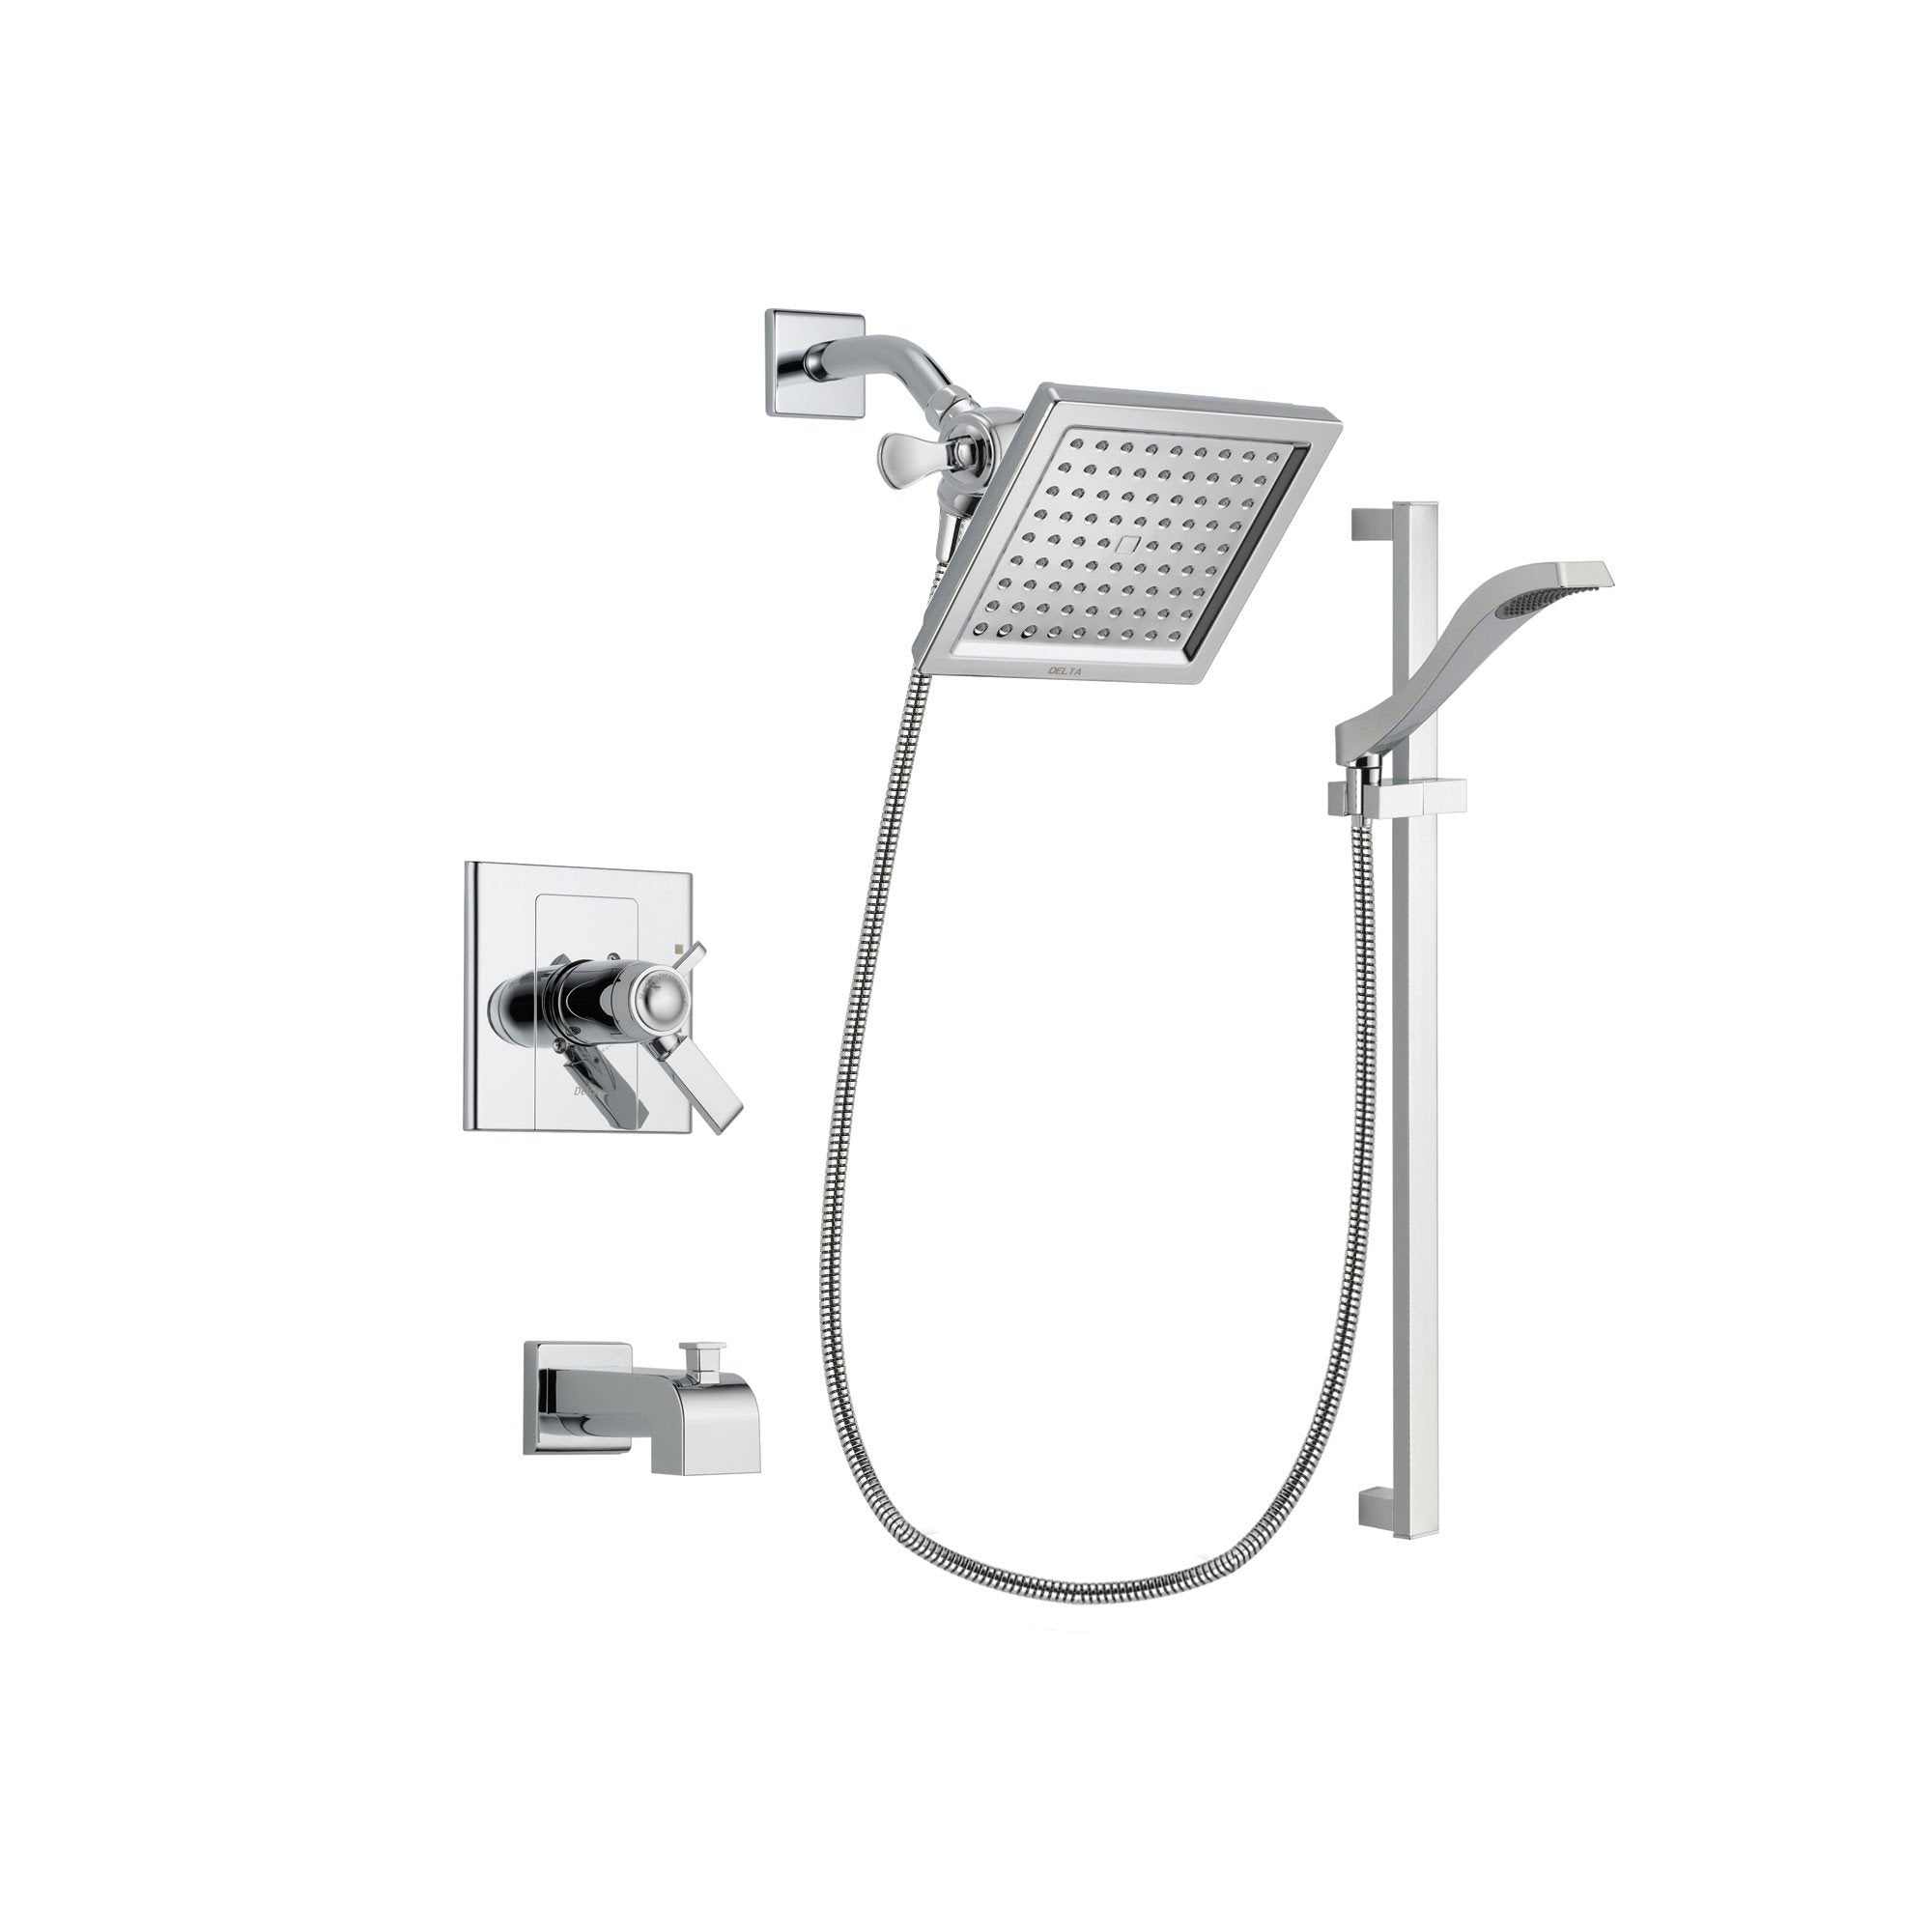 Delta Arzo Chrome Finish Thermostatic Tub and Shower Faucet System Package with 6.5-inch Square Rain Showerhead and Wall Mount Slide Bar with Handheld Shower Spray Includes Rough-in Valve and Tub Spout DSP0166V